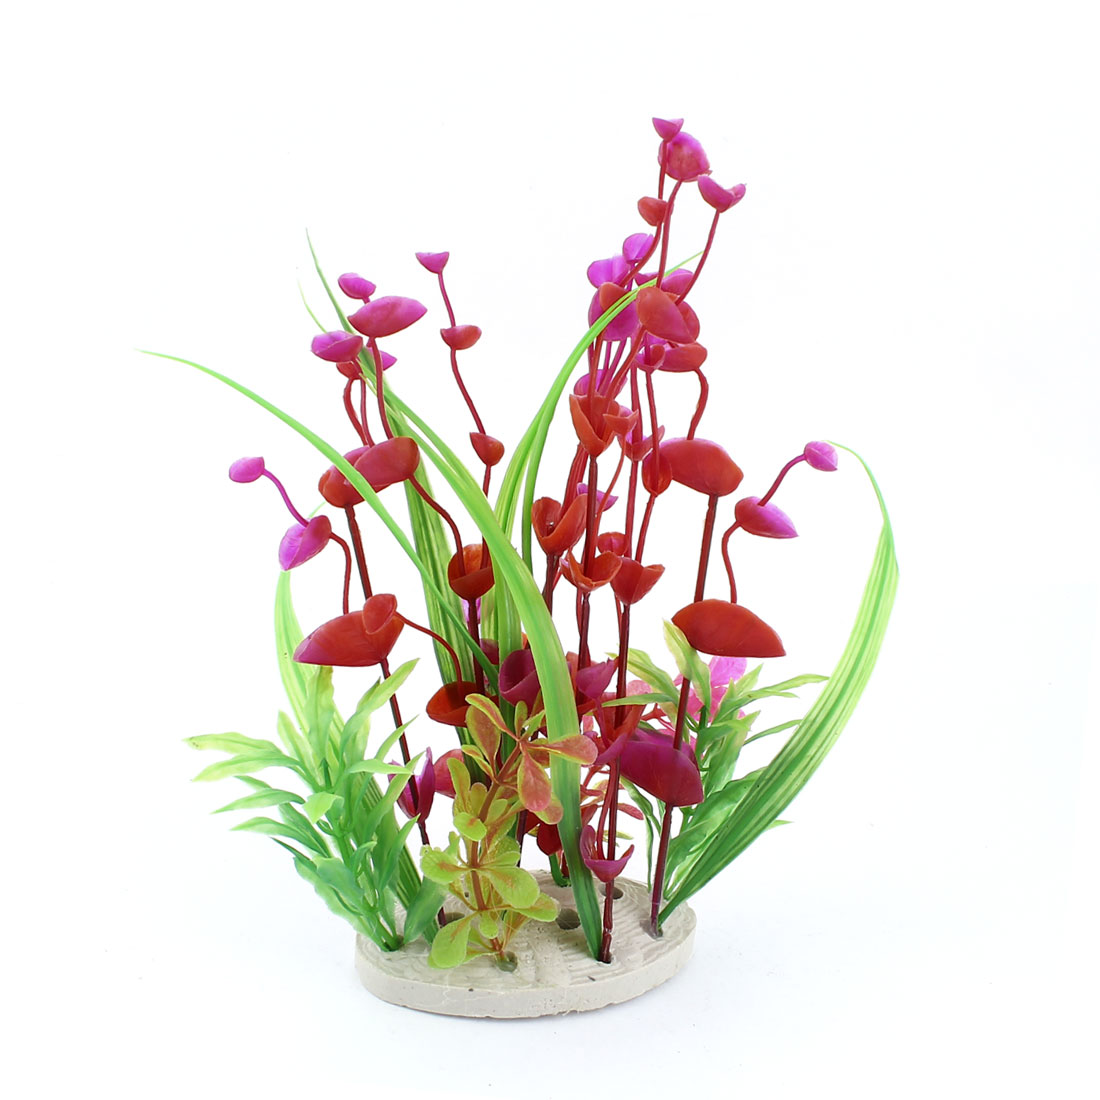 "9"" High Green Grass Red Violet Leaf Plastic Aquatic Plants Aquarium Decor"